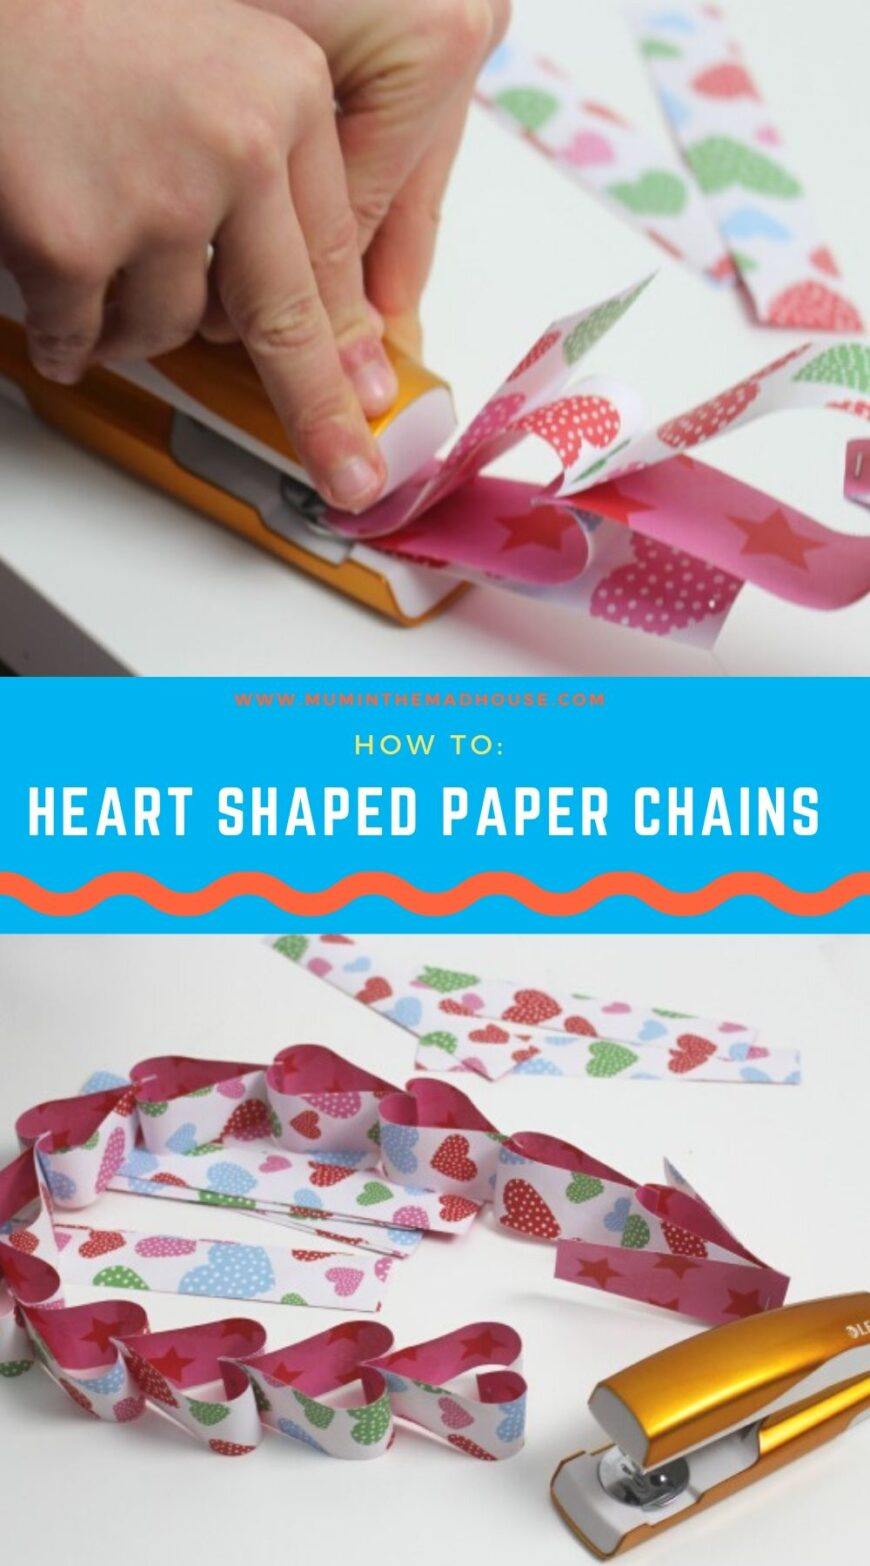 This sweet and simple heart-shaped paper chain is perfect for Valentine's Day, mostly because it's made with items you likely have hanging around the house.